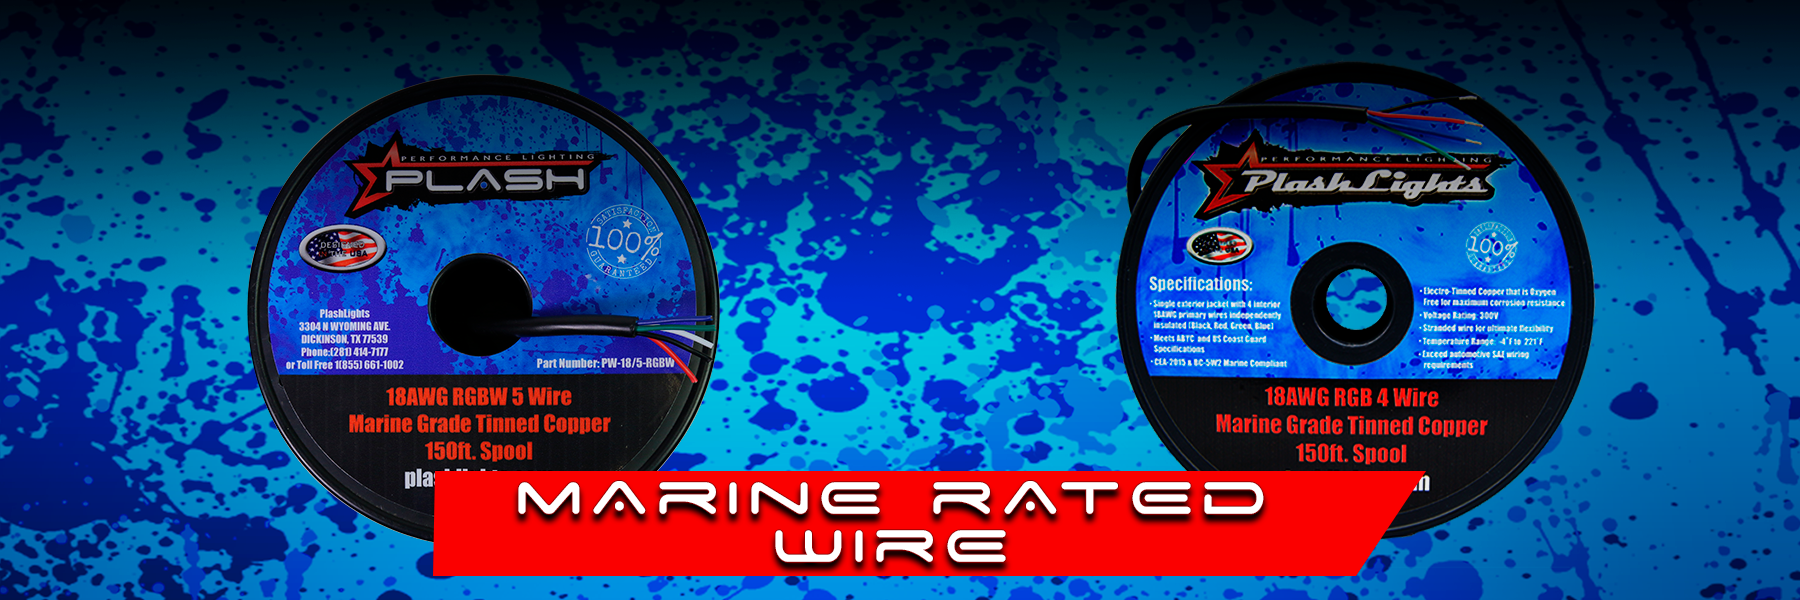 MARINE RATED WIRE